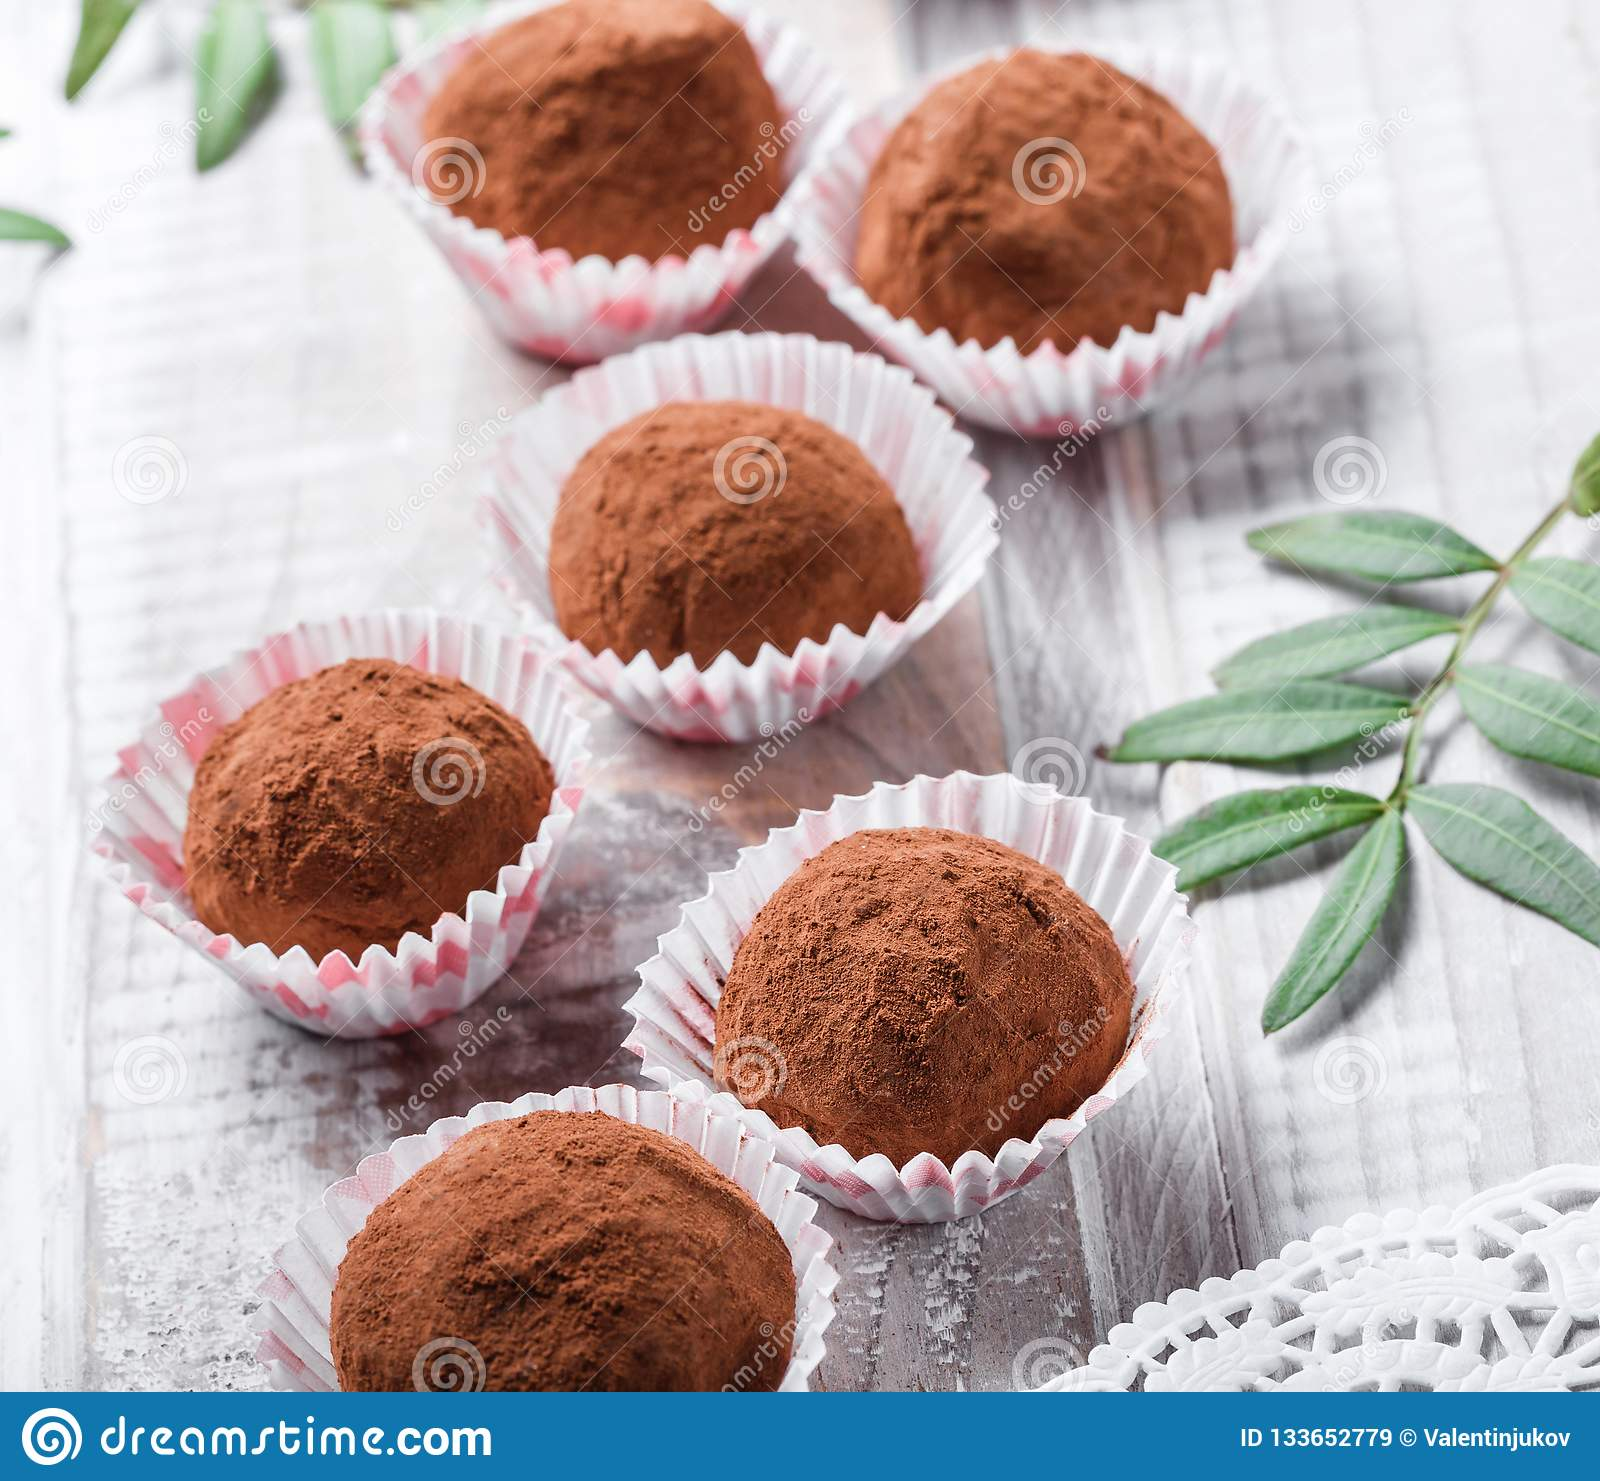 Homemade Chocolate truffles candy dessert on wooden background close up.